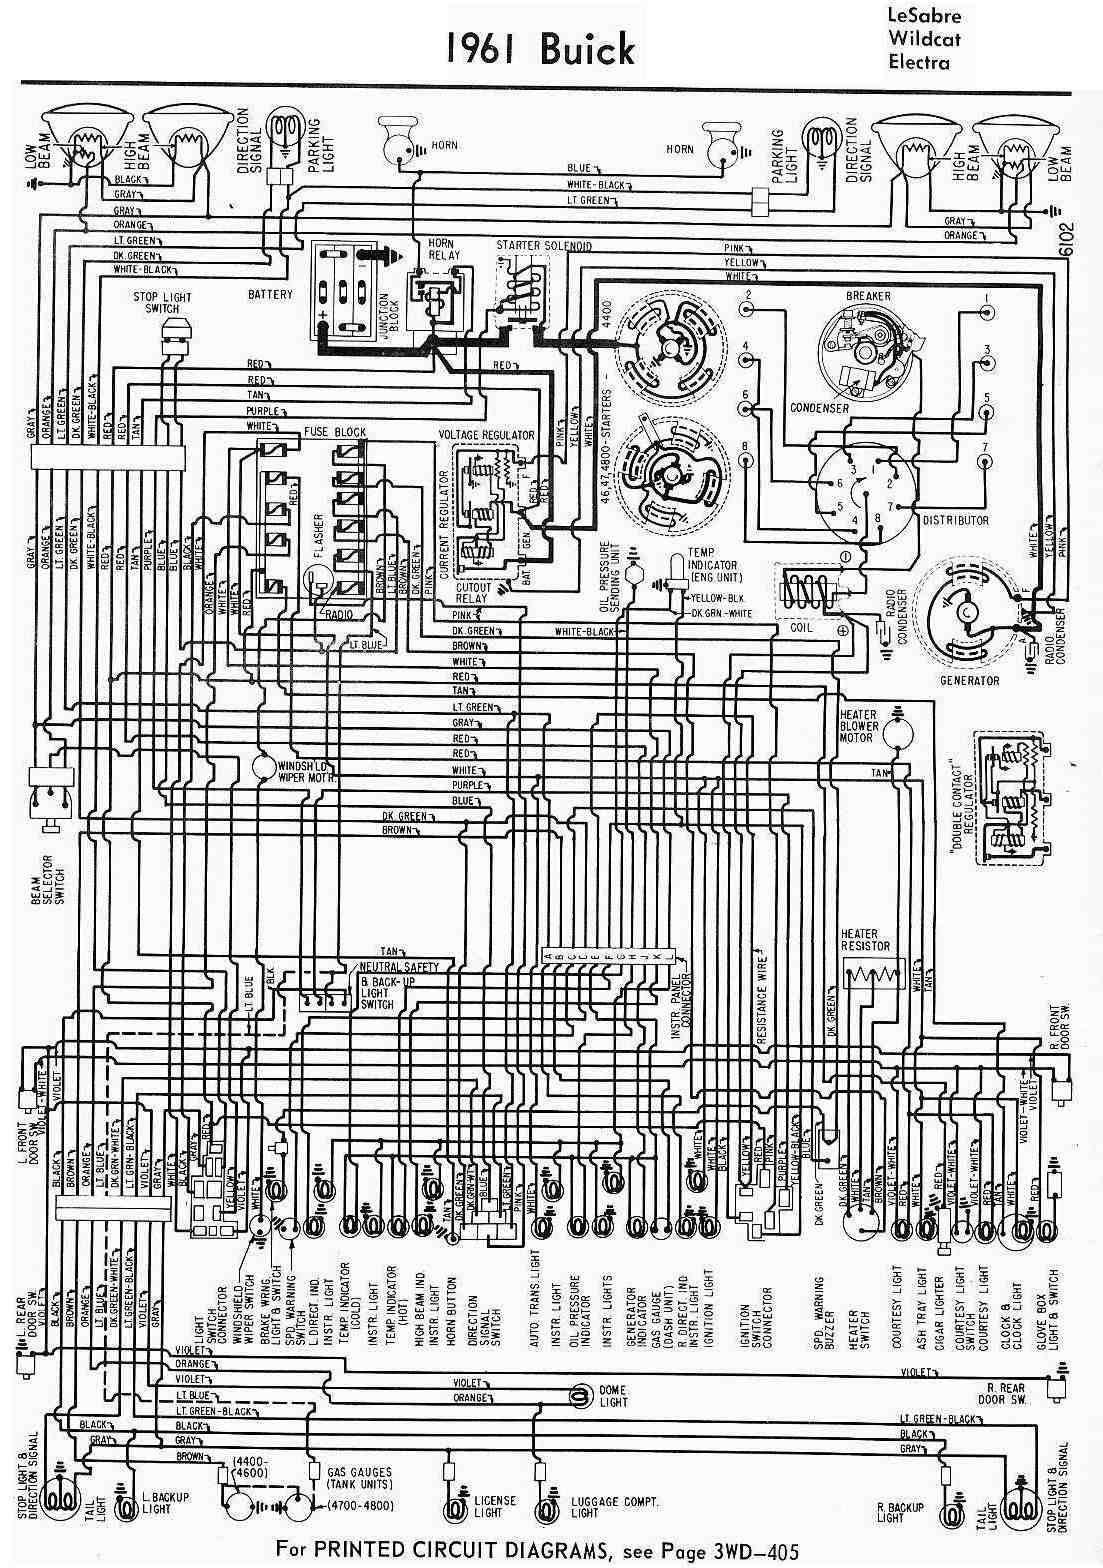 Amazing 1997 Bmw Wiring Diagram Crest - Everything You Need to Know ...